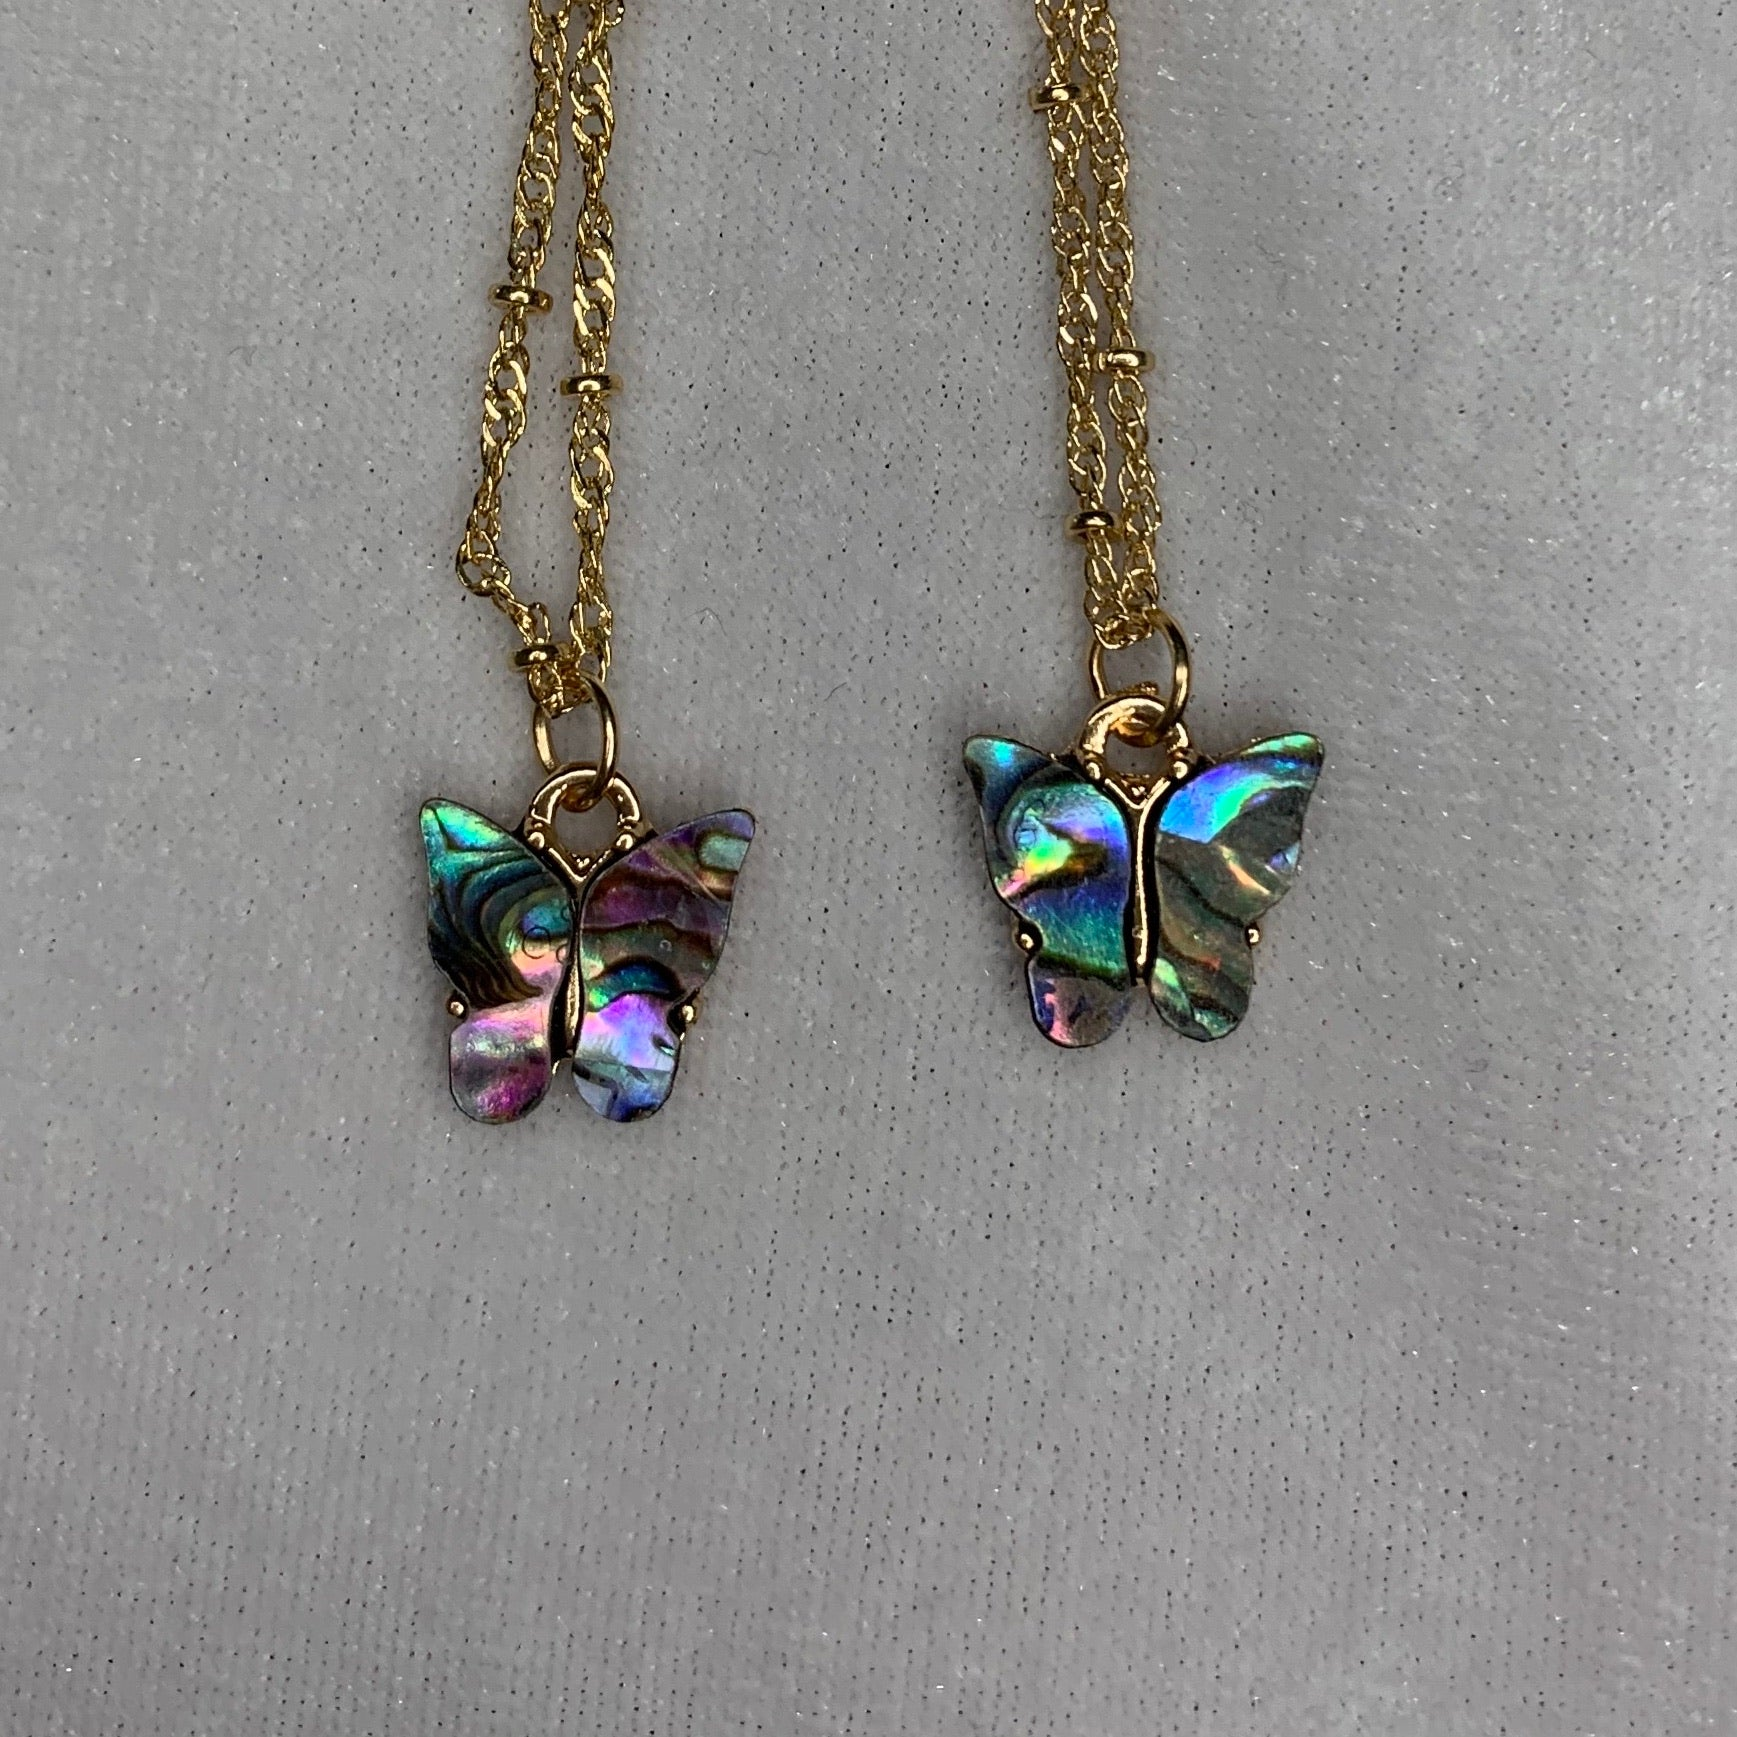 Abalone Mariposa Necklace